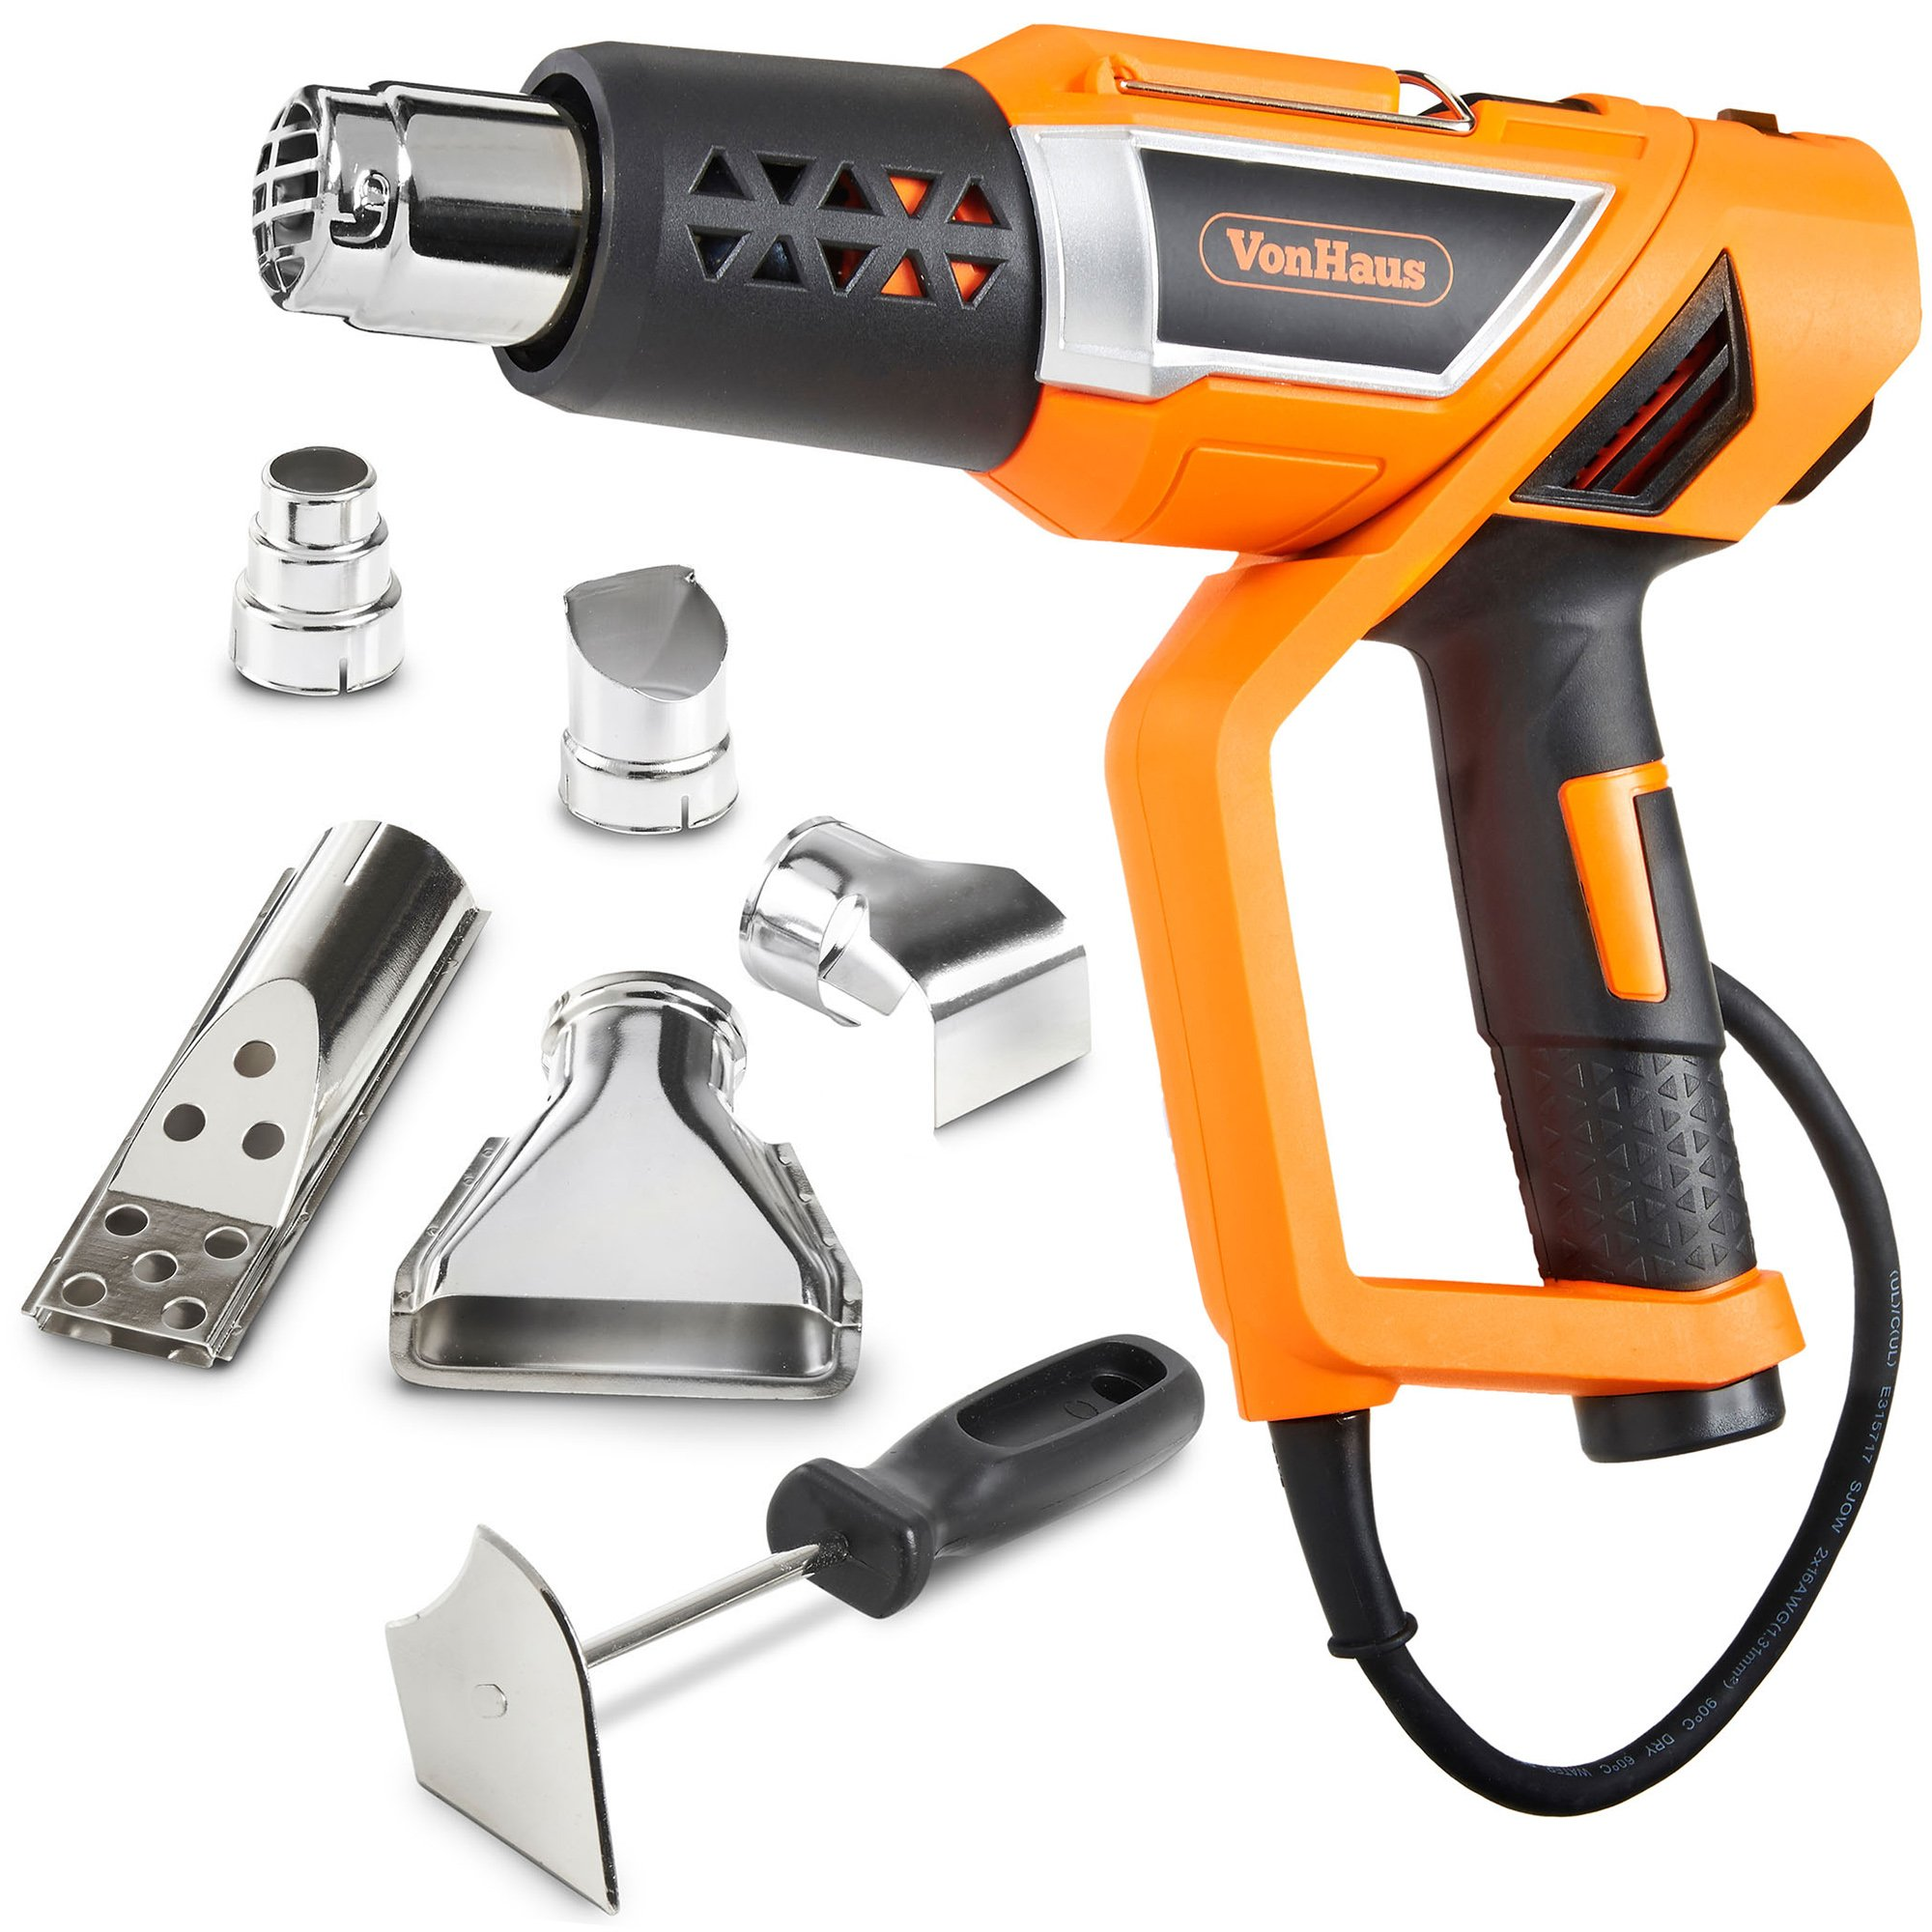 VonHaus Heat Gun 1500W Hot Air Gun with Variable Temperature Control 122℉-1112℉, 3-Position Adjustable Handle and 5 Nozzle Attachments for Shrinking PVC, Removing Paint, Bending Pipes, BBQ Grills